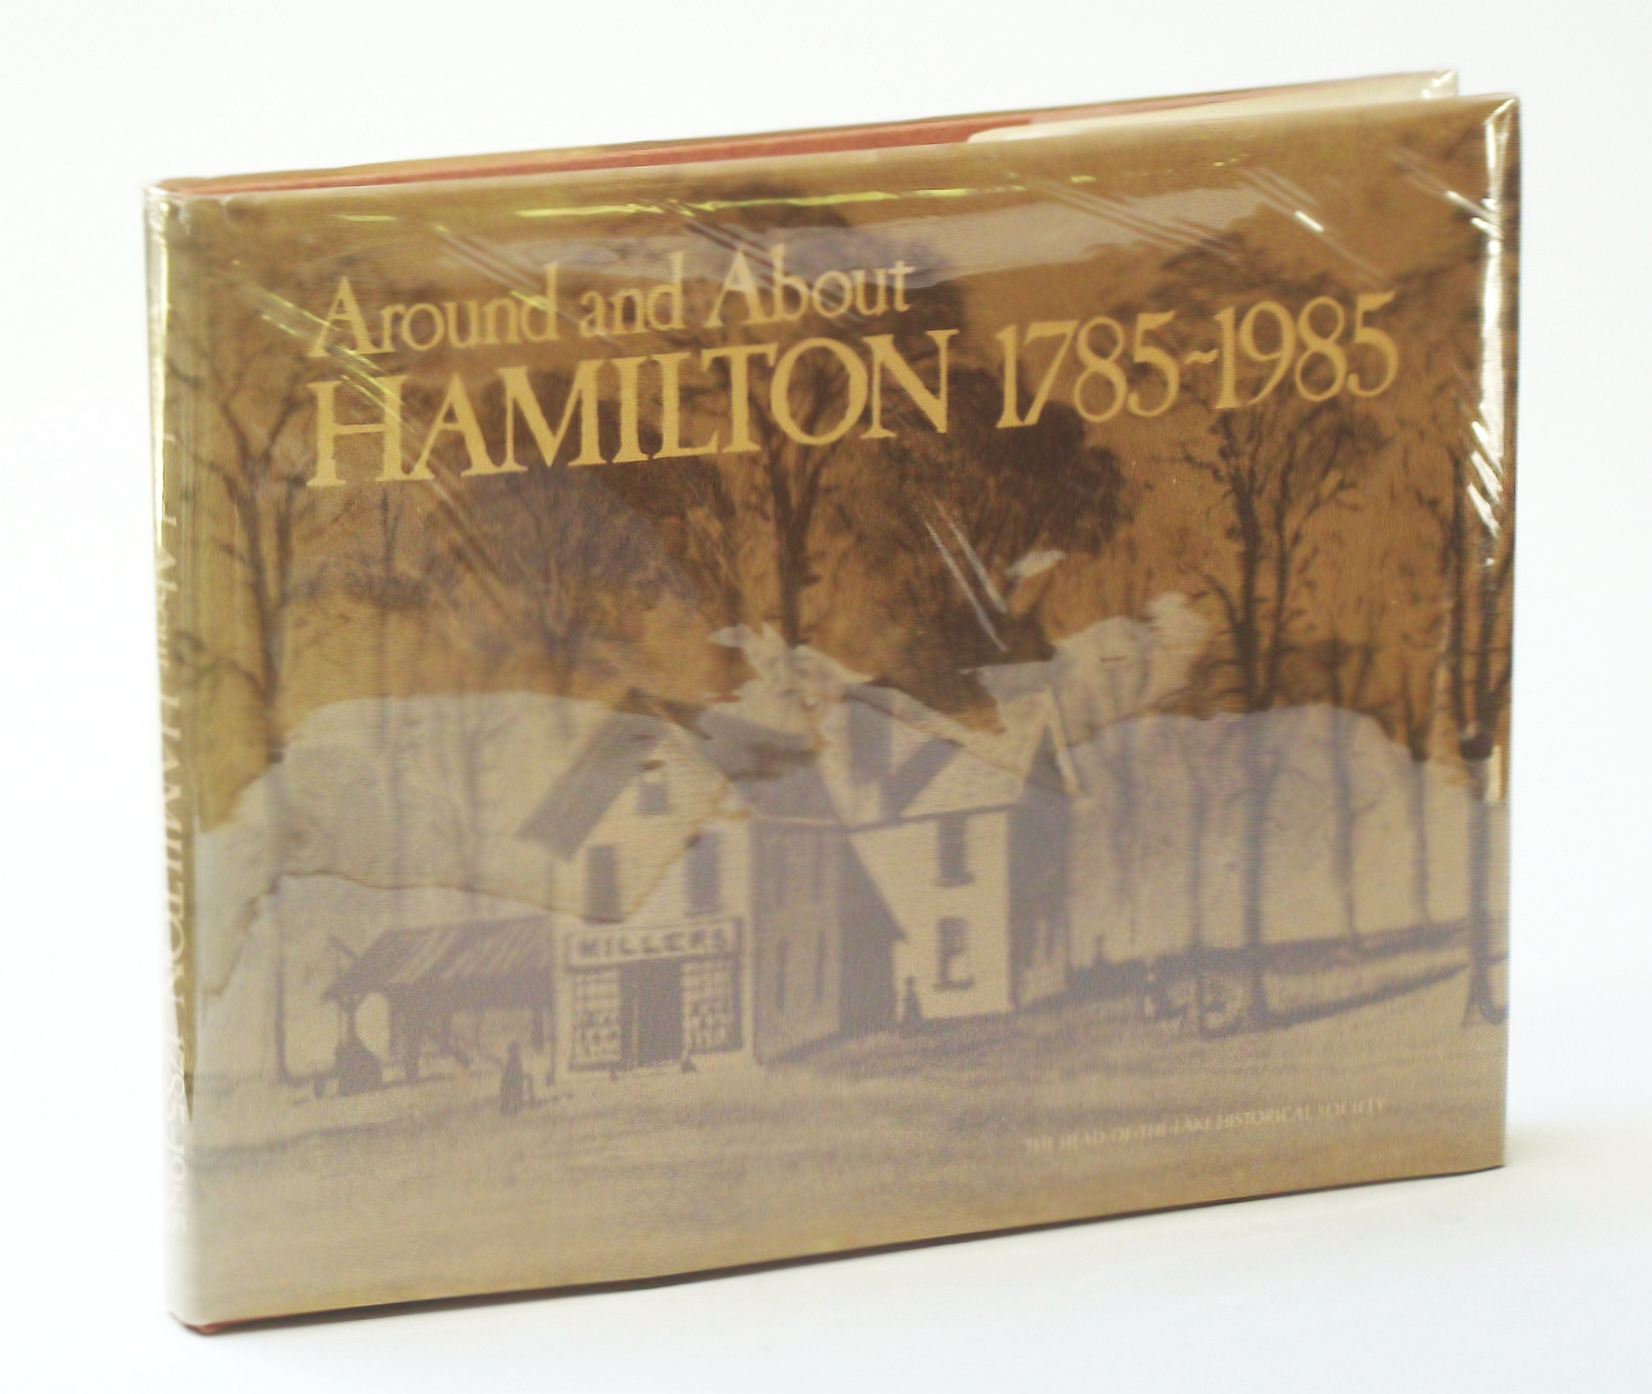 Image for Around and About Hamilton 1785-1985: A Pictorial History of the Hamilton-Wentworth Region